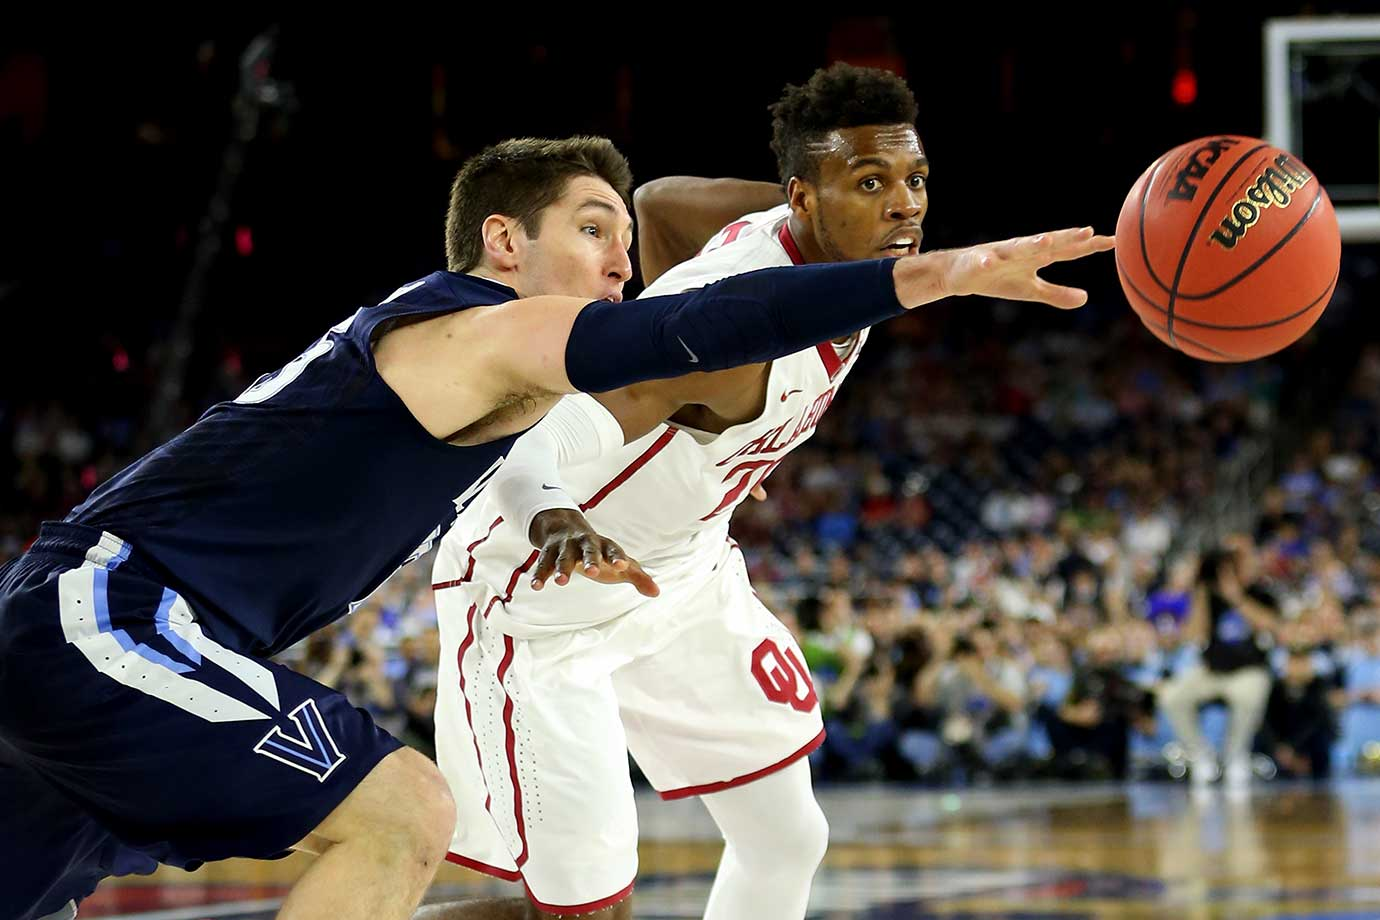 Ryan Arcidiacono of Villanova deflects the ball before it can reach Buddy Hield of Oklahoma.